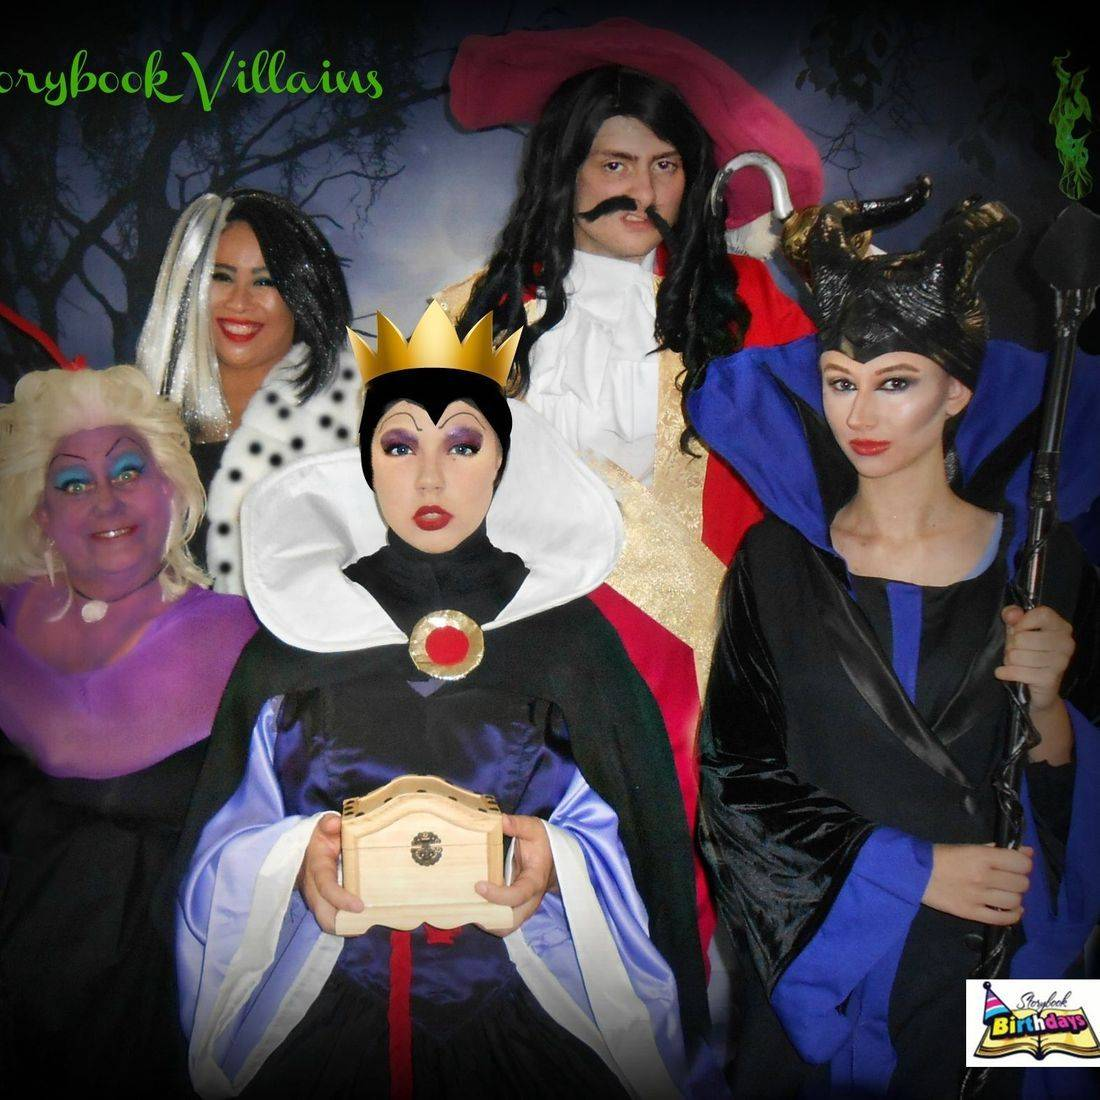 Captain Hook Neverland Birthday Party Biloxi